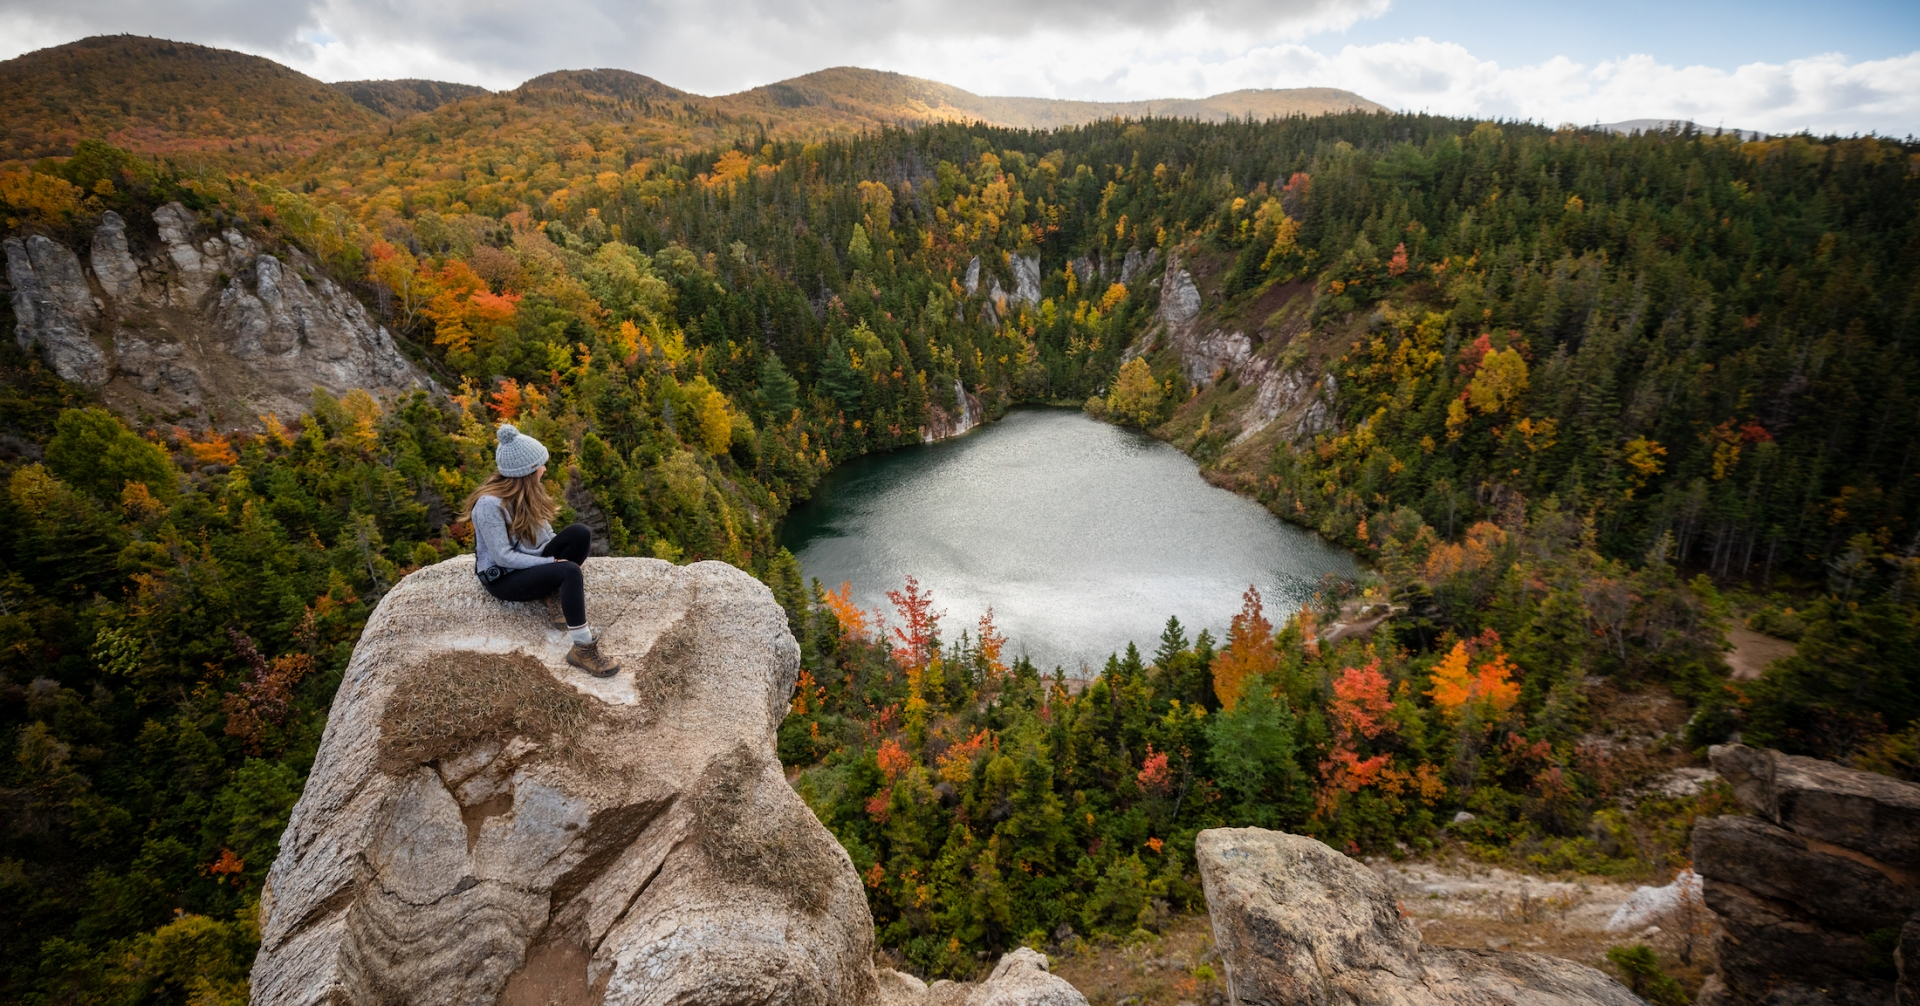 hiker stop to admire the fall foliage at the Gypsum Mine Quarry trail